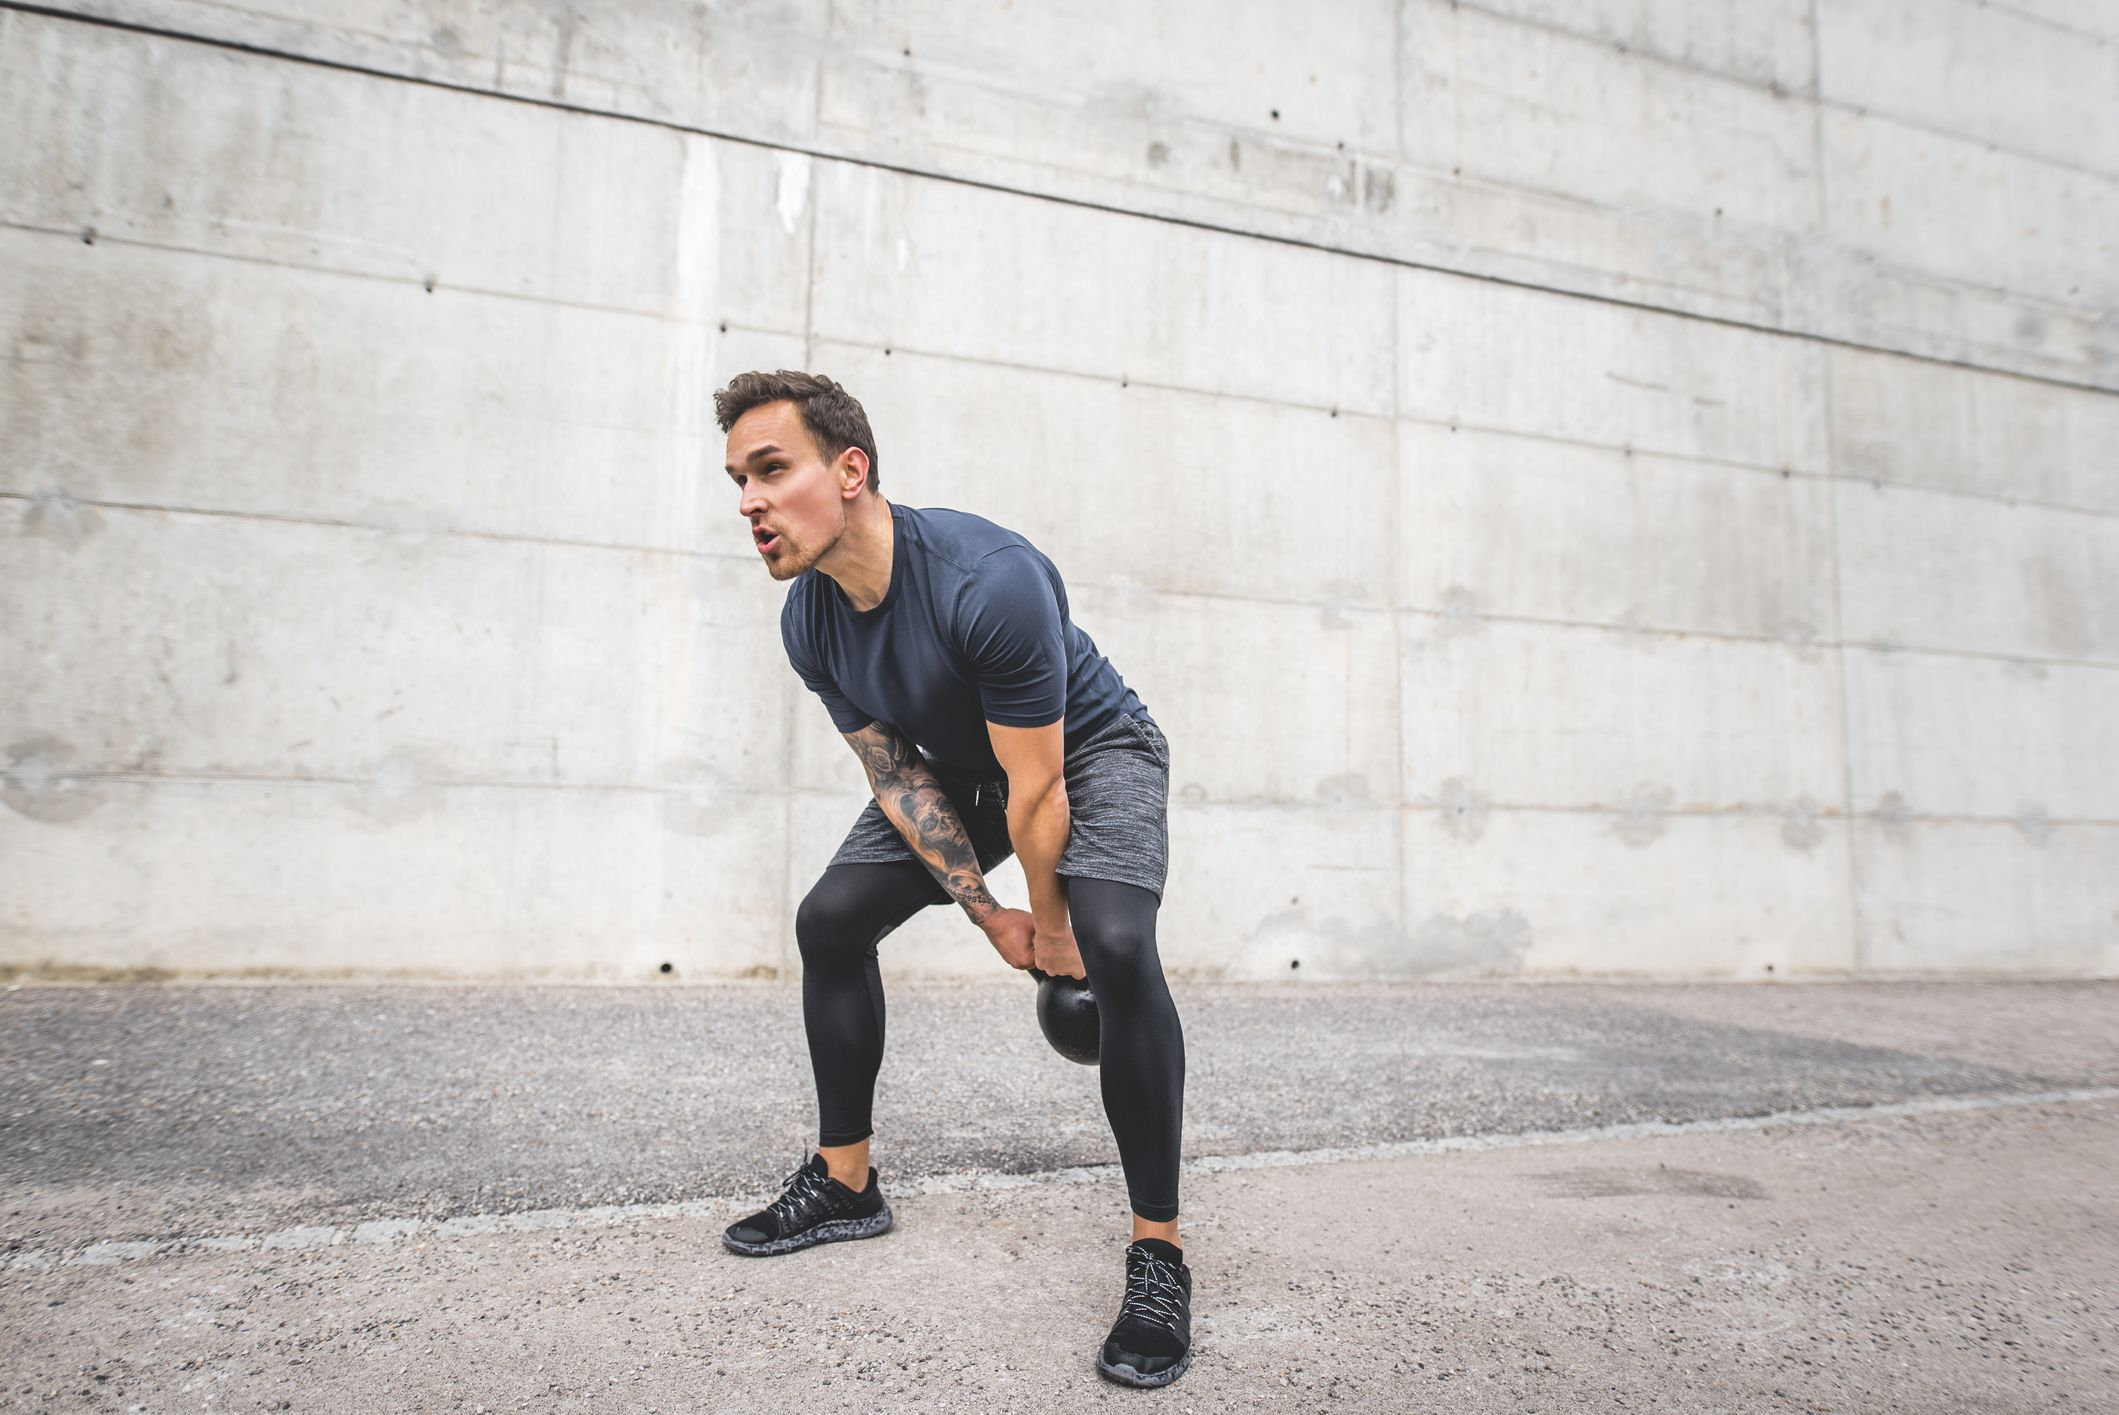 This 180-Rep Endurance Challenge Is Designed to Blast Body Fat and Build Functional Muscle